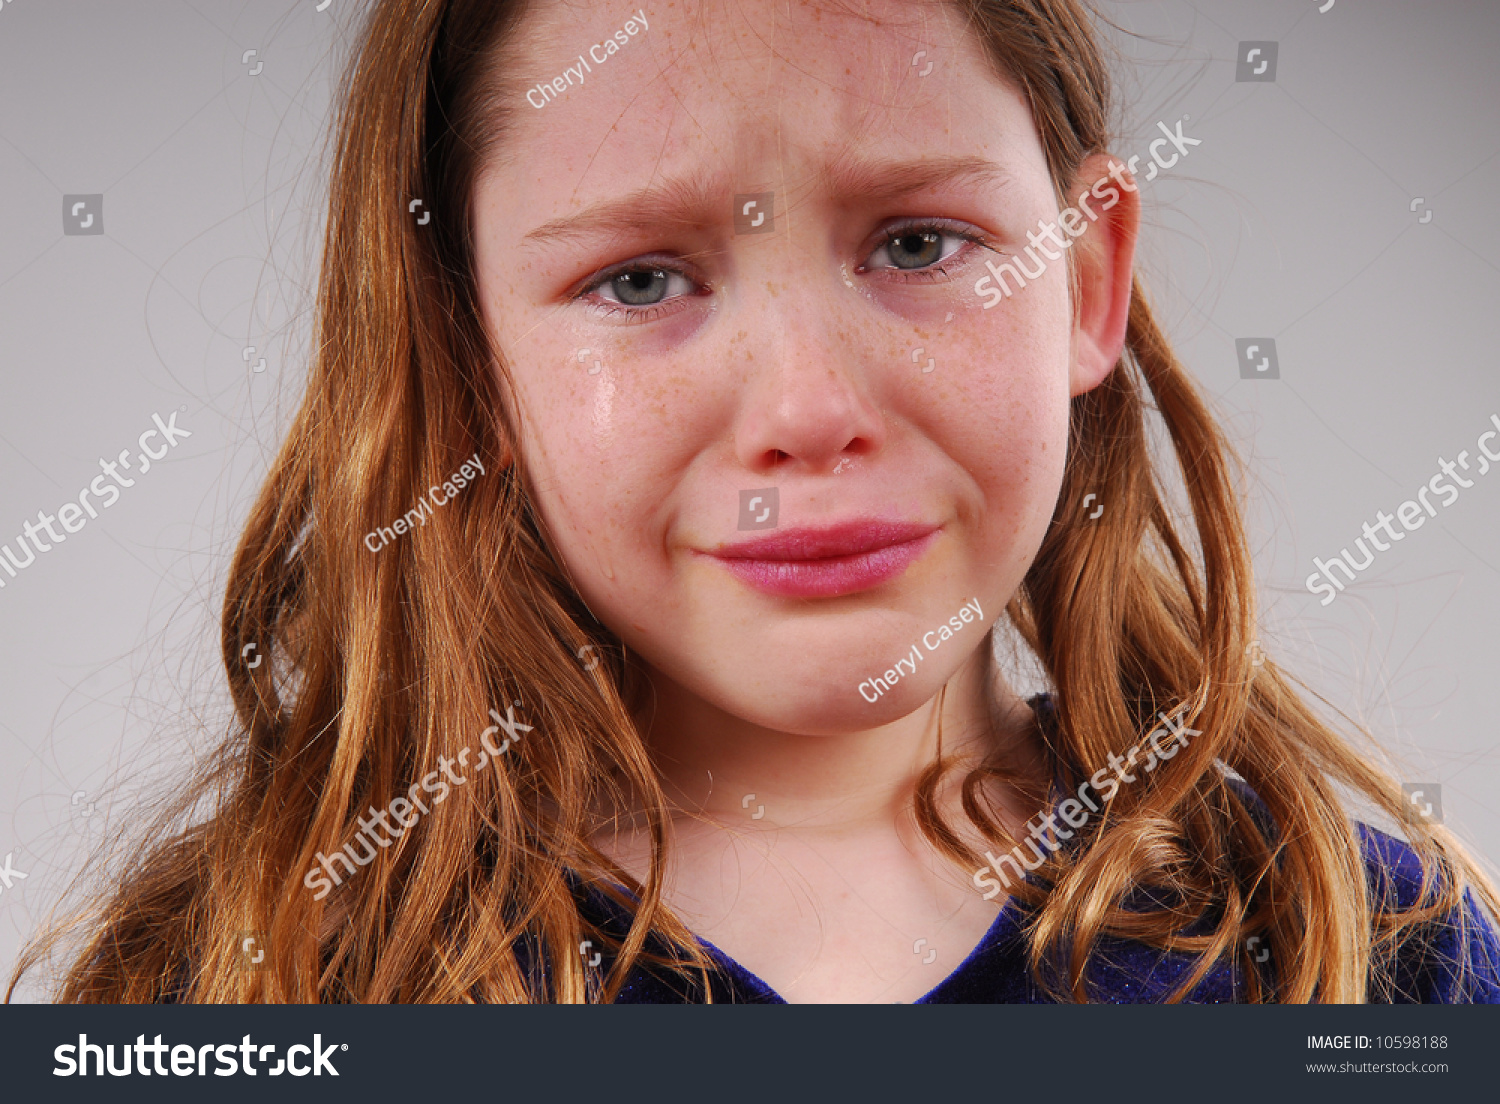 Young Girl Crying Upset Stock Photo 10598188 - Shutterstock-7762